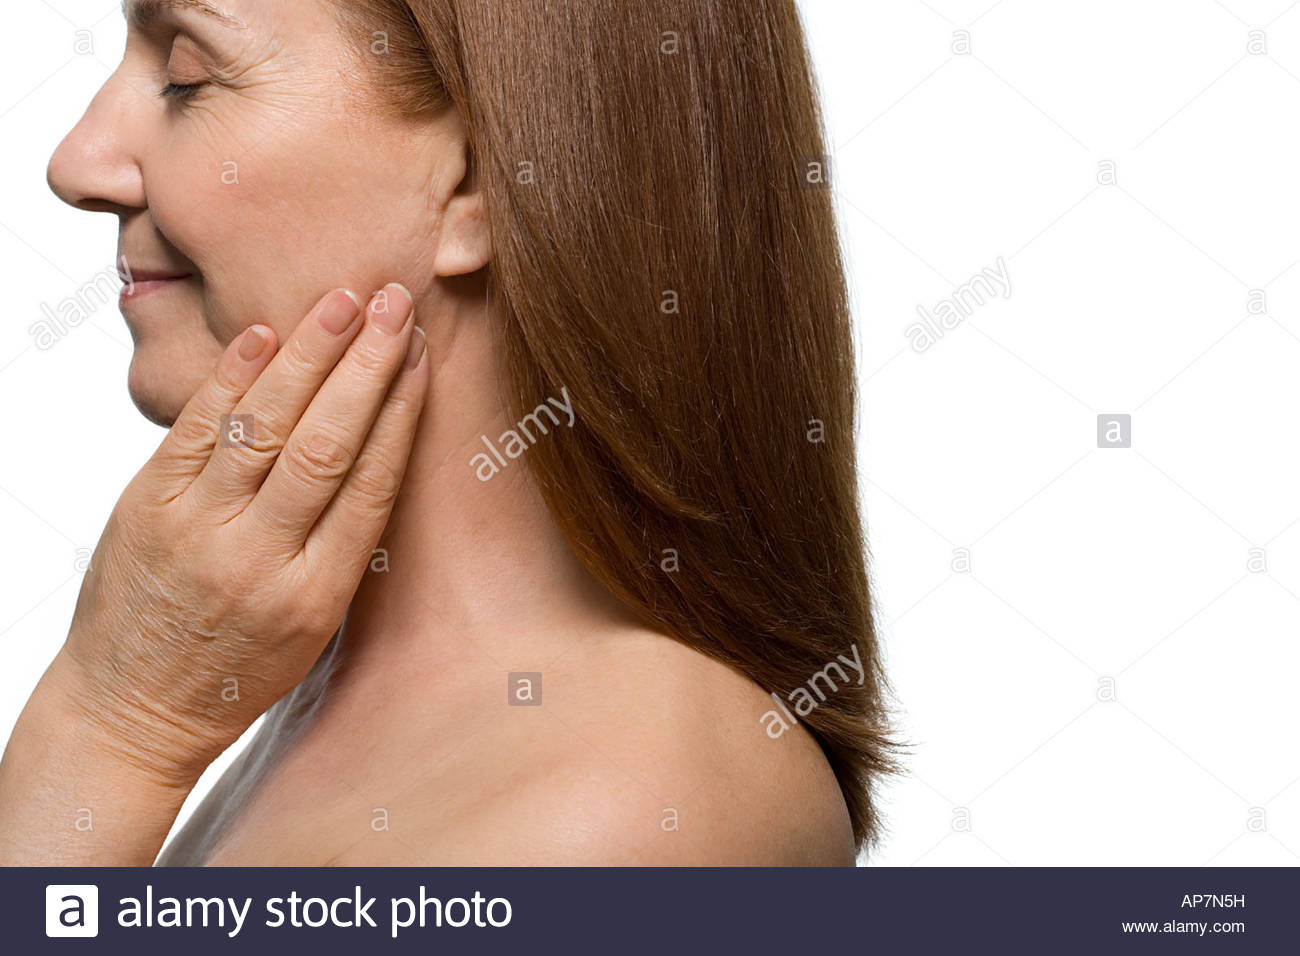 Human Neck Anatomy Stock Photos & Human Neck Anatomy Stock Images ...